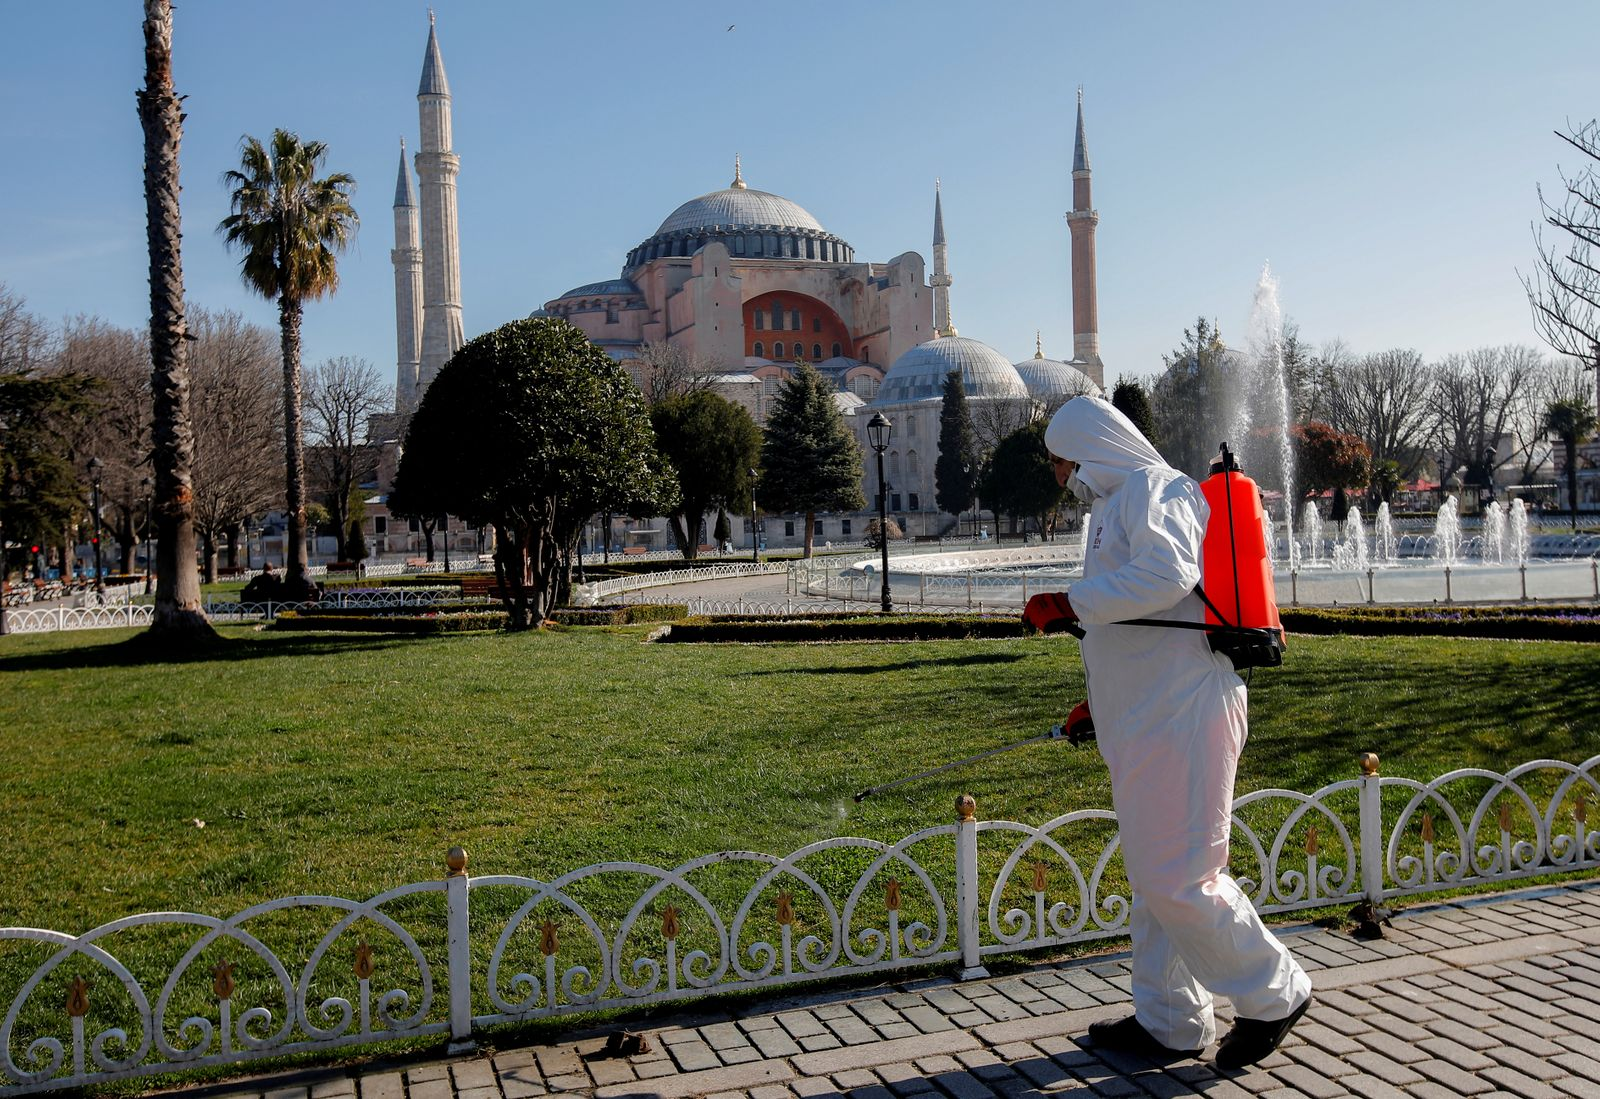 A worker in protective suit disinfects Sultanahmet square in response to the spread of coronavirus disease (COVID-19) in Istanbul